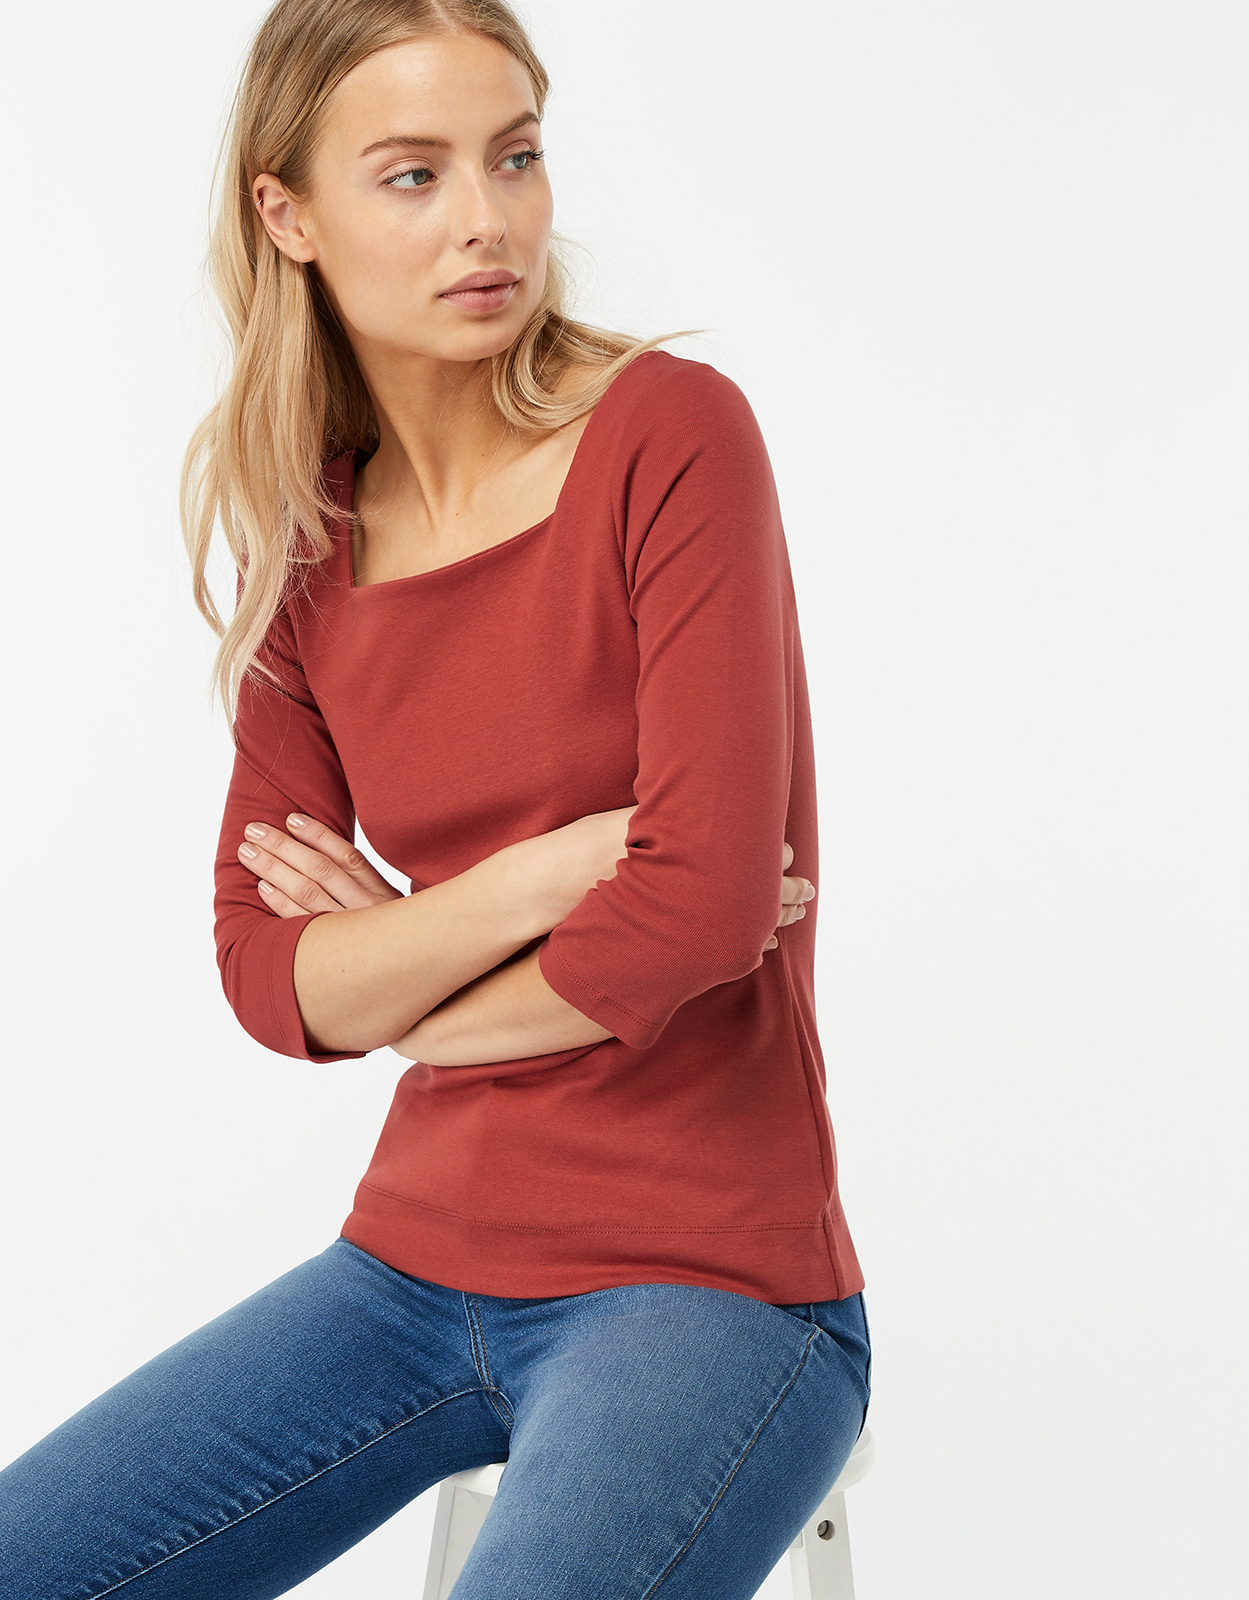 Monsoon Bryony Square Neck Basic Top